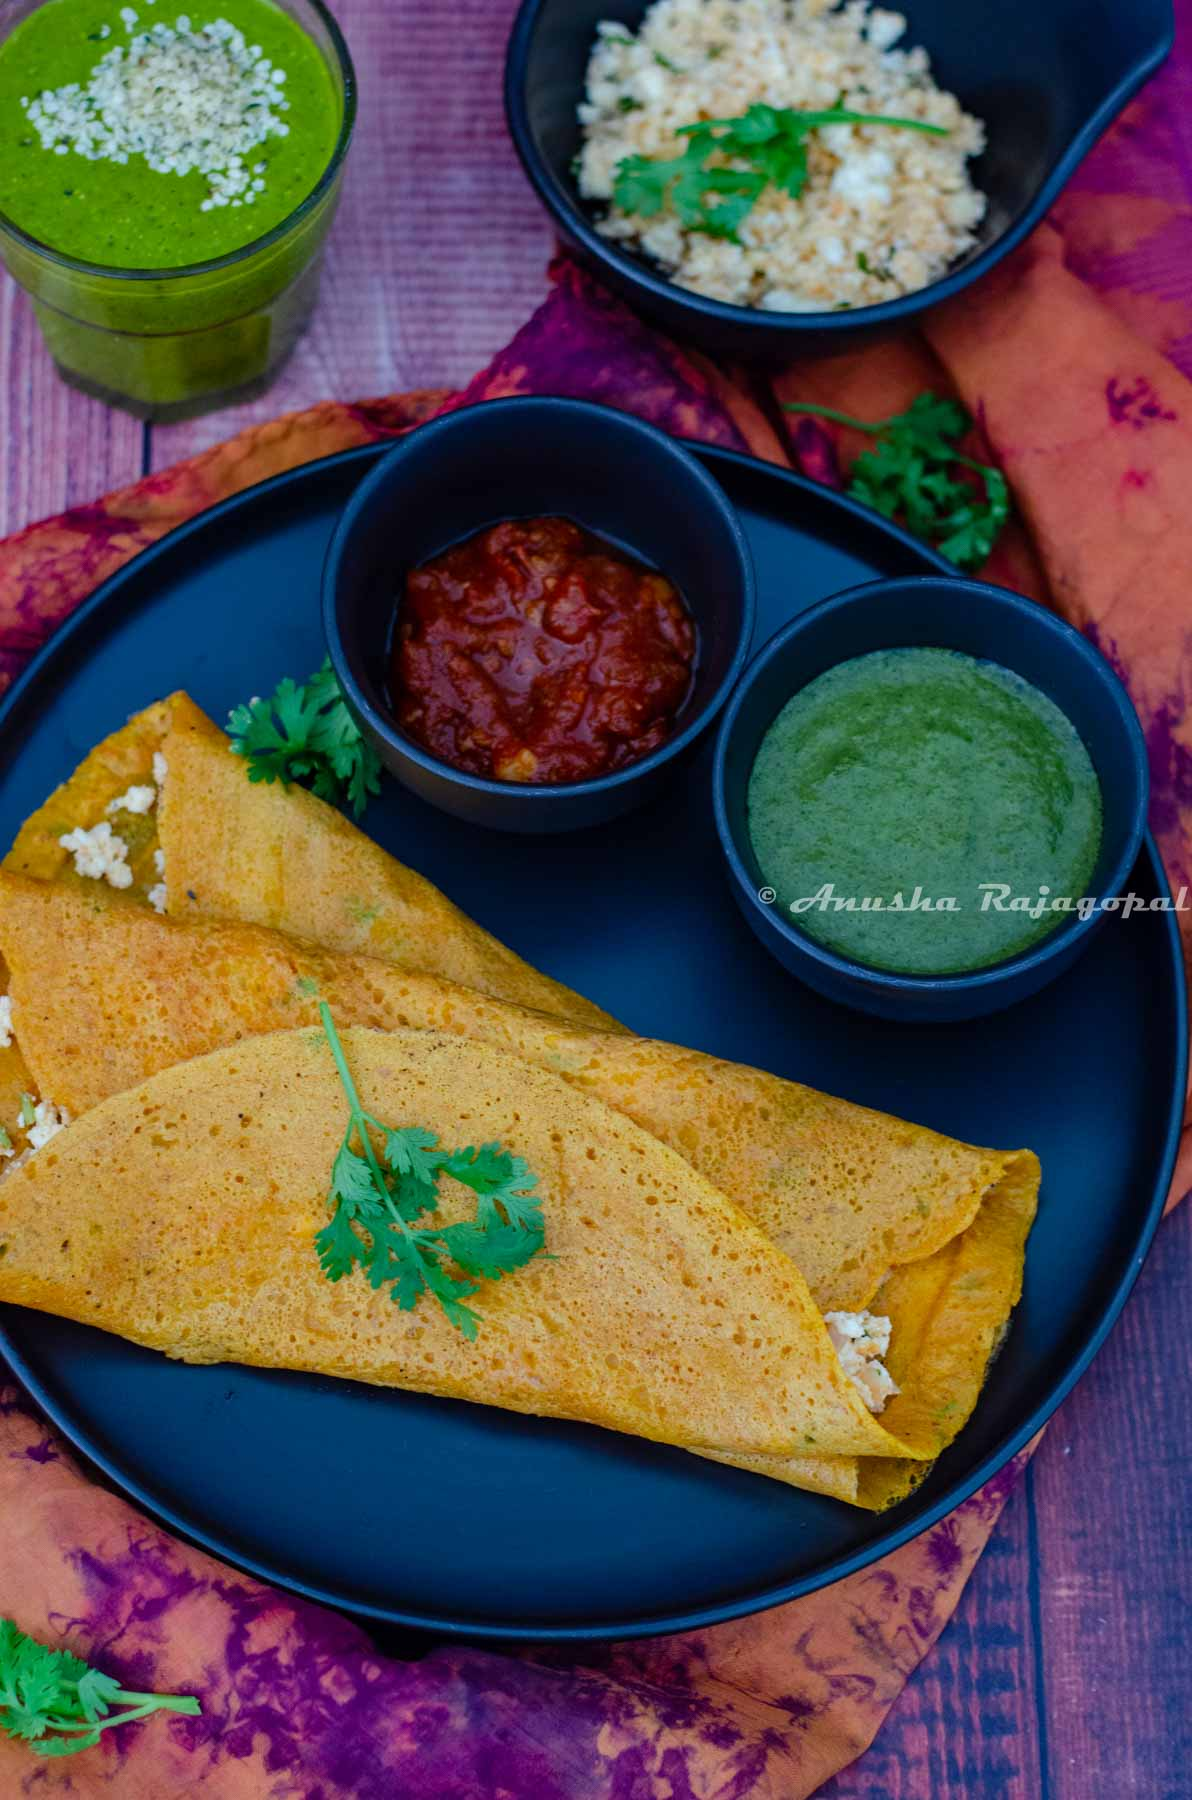 Moong dal cheelas stuffed with paneer and served with chutneys and a smoothie